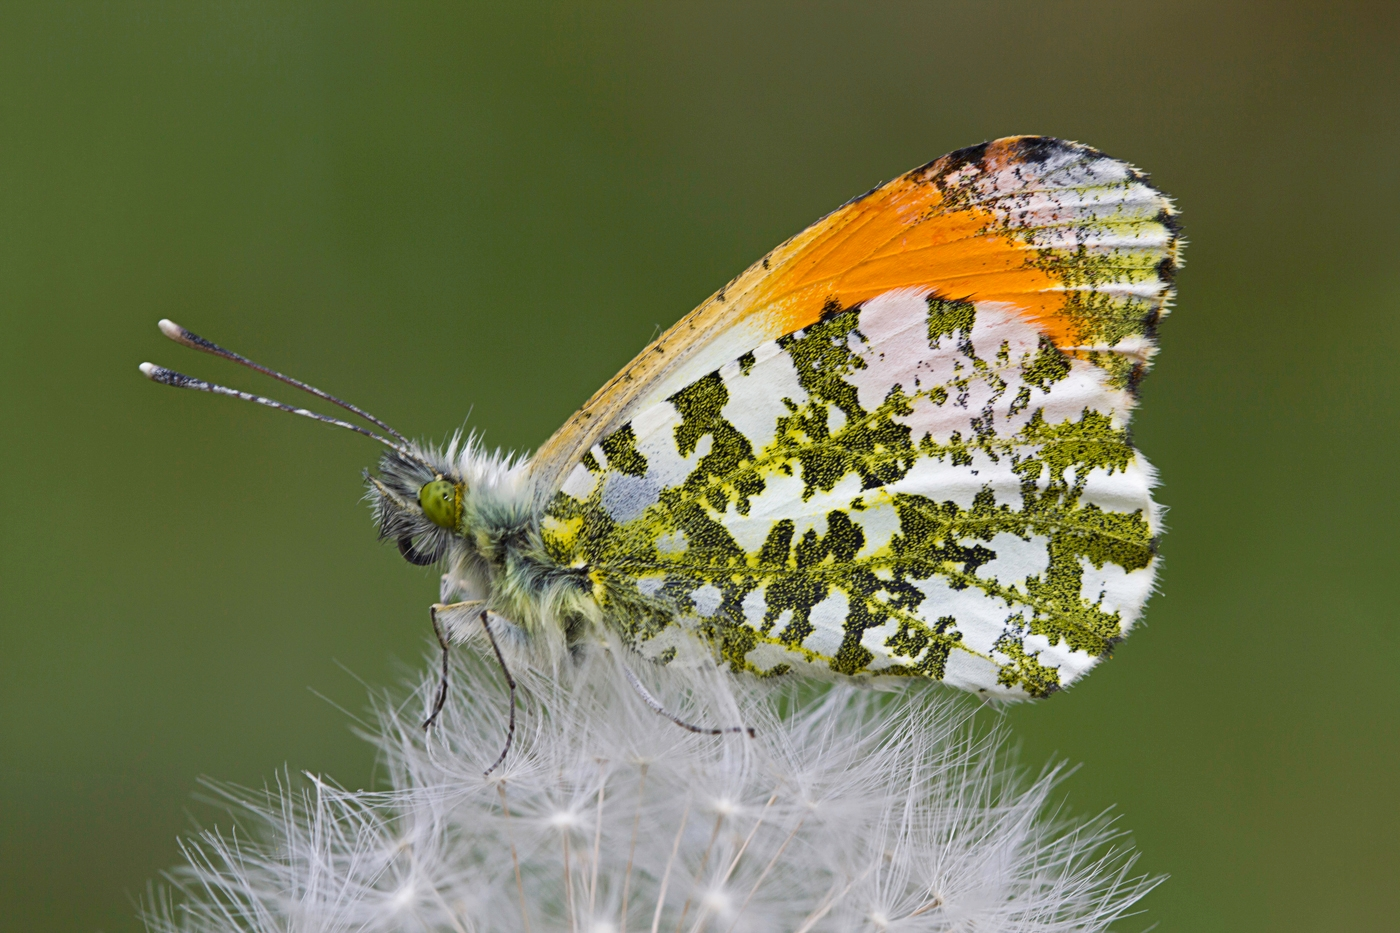 3rd Place - Orange Tip Butterfly (Anthocharis cardamines) on Dandelion by Jackie Kirby